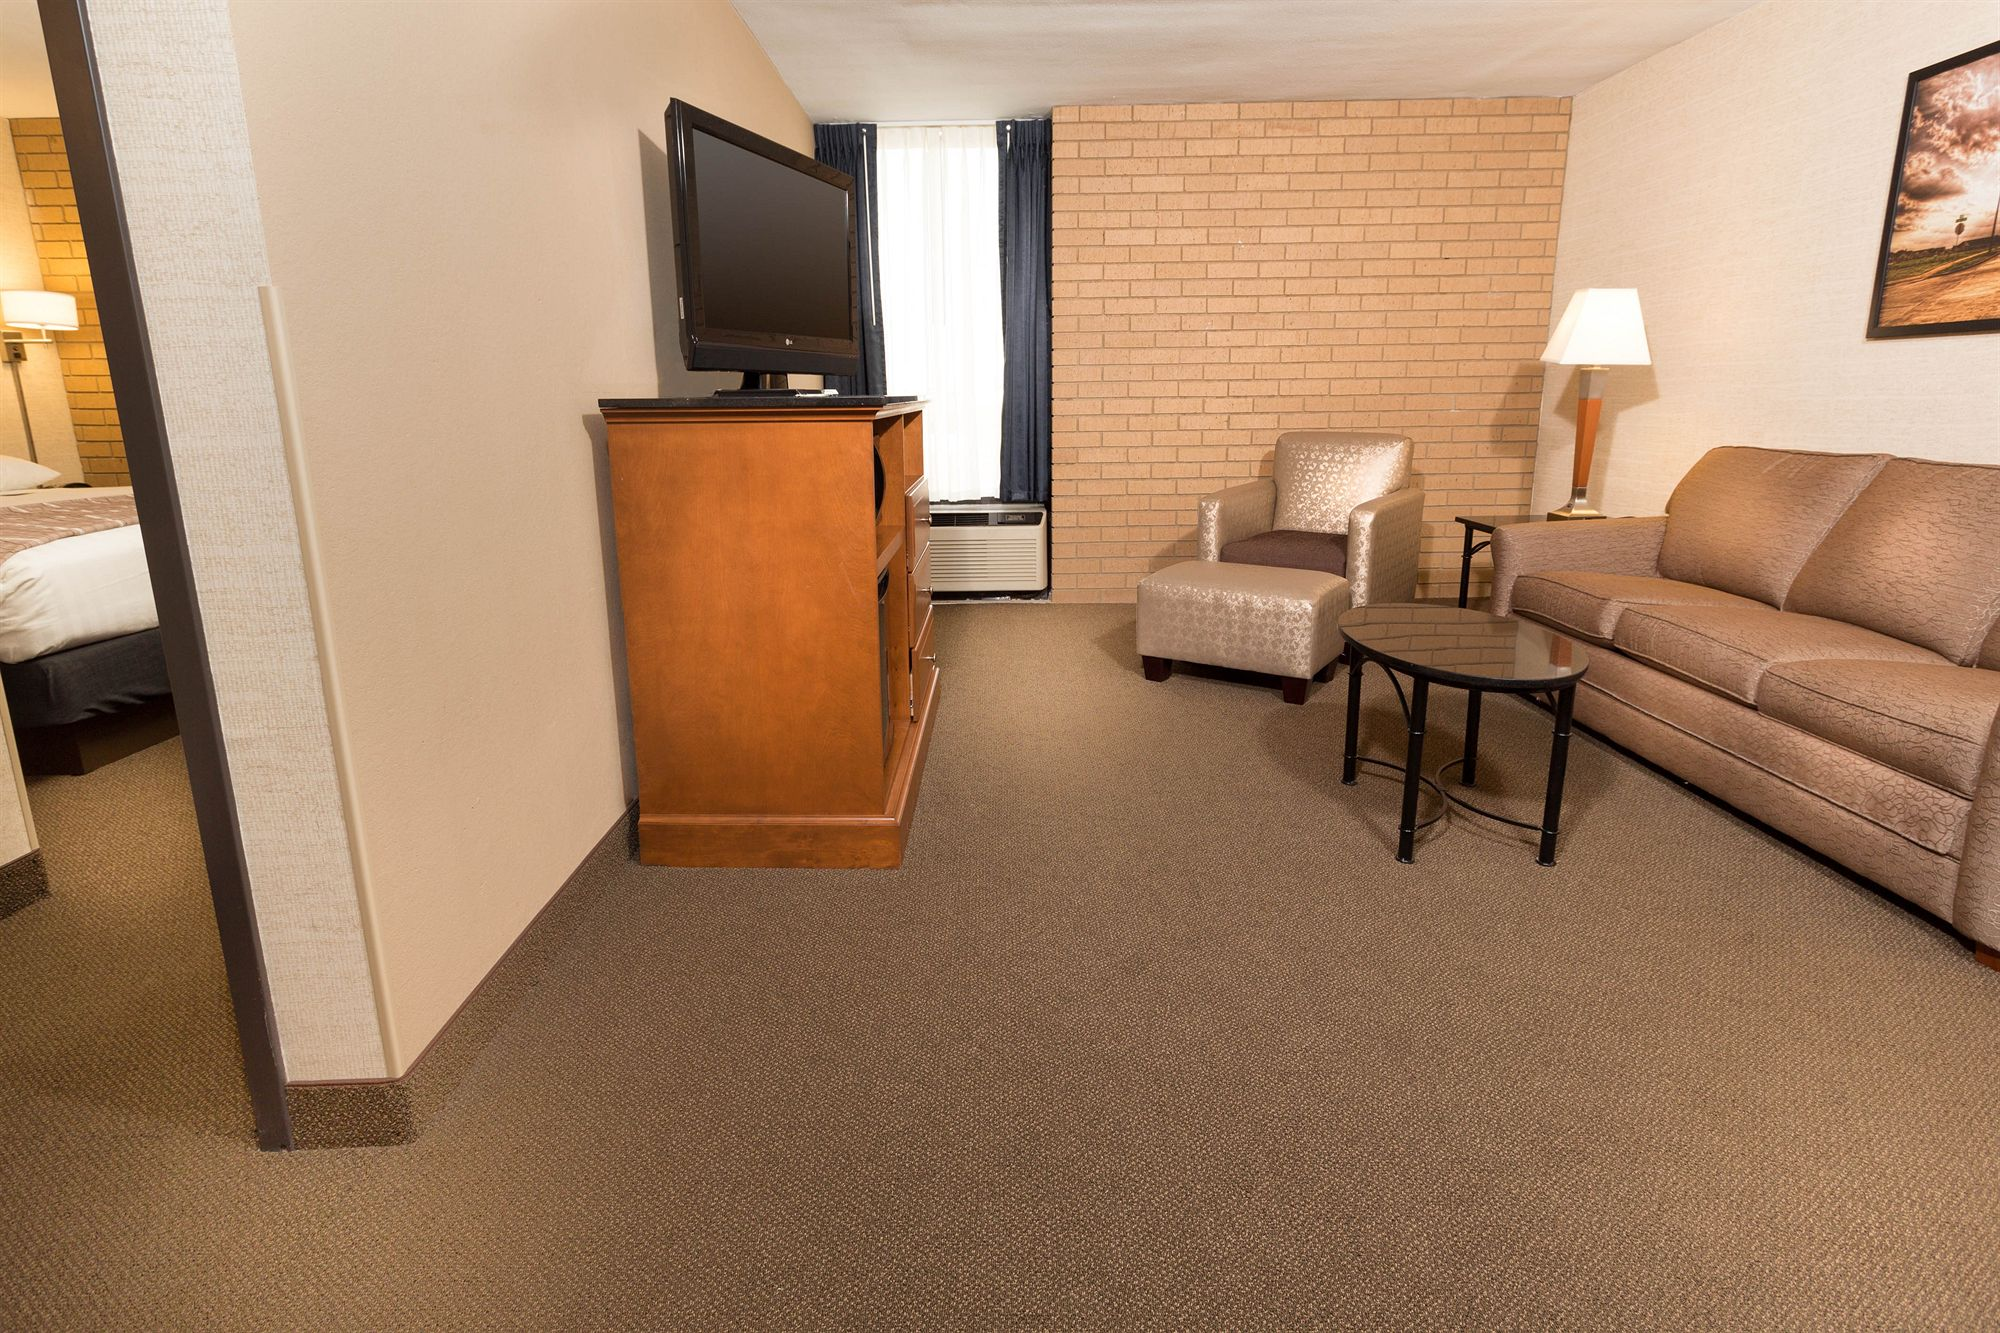 Champaign Hotel Coupons for Champaign, Illinois - FreeHotelCoupons.com